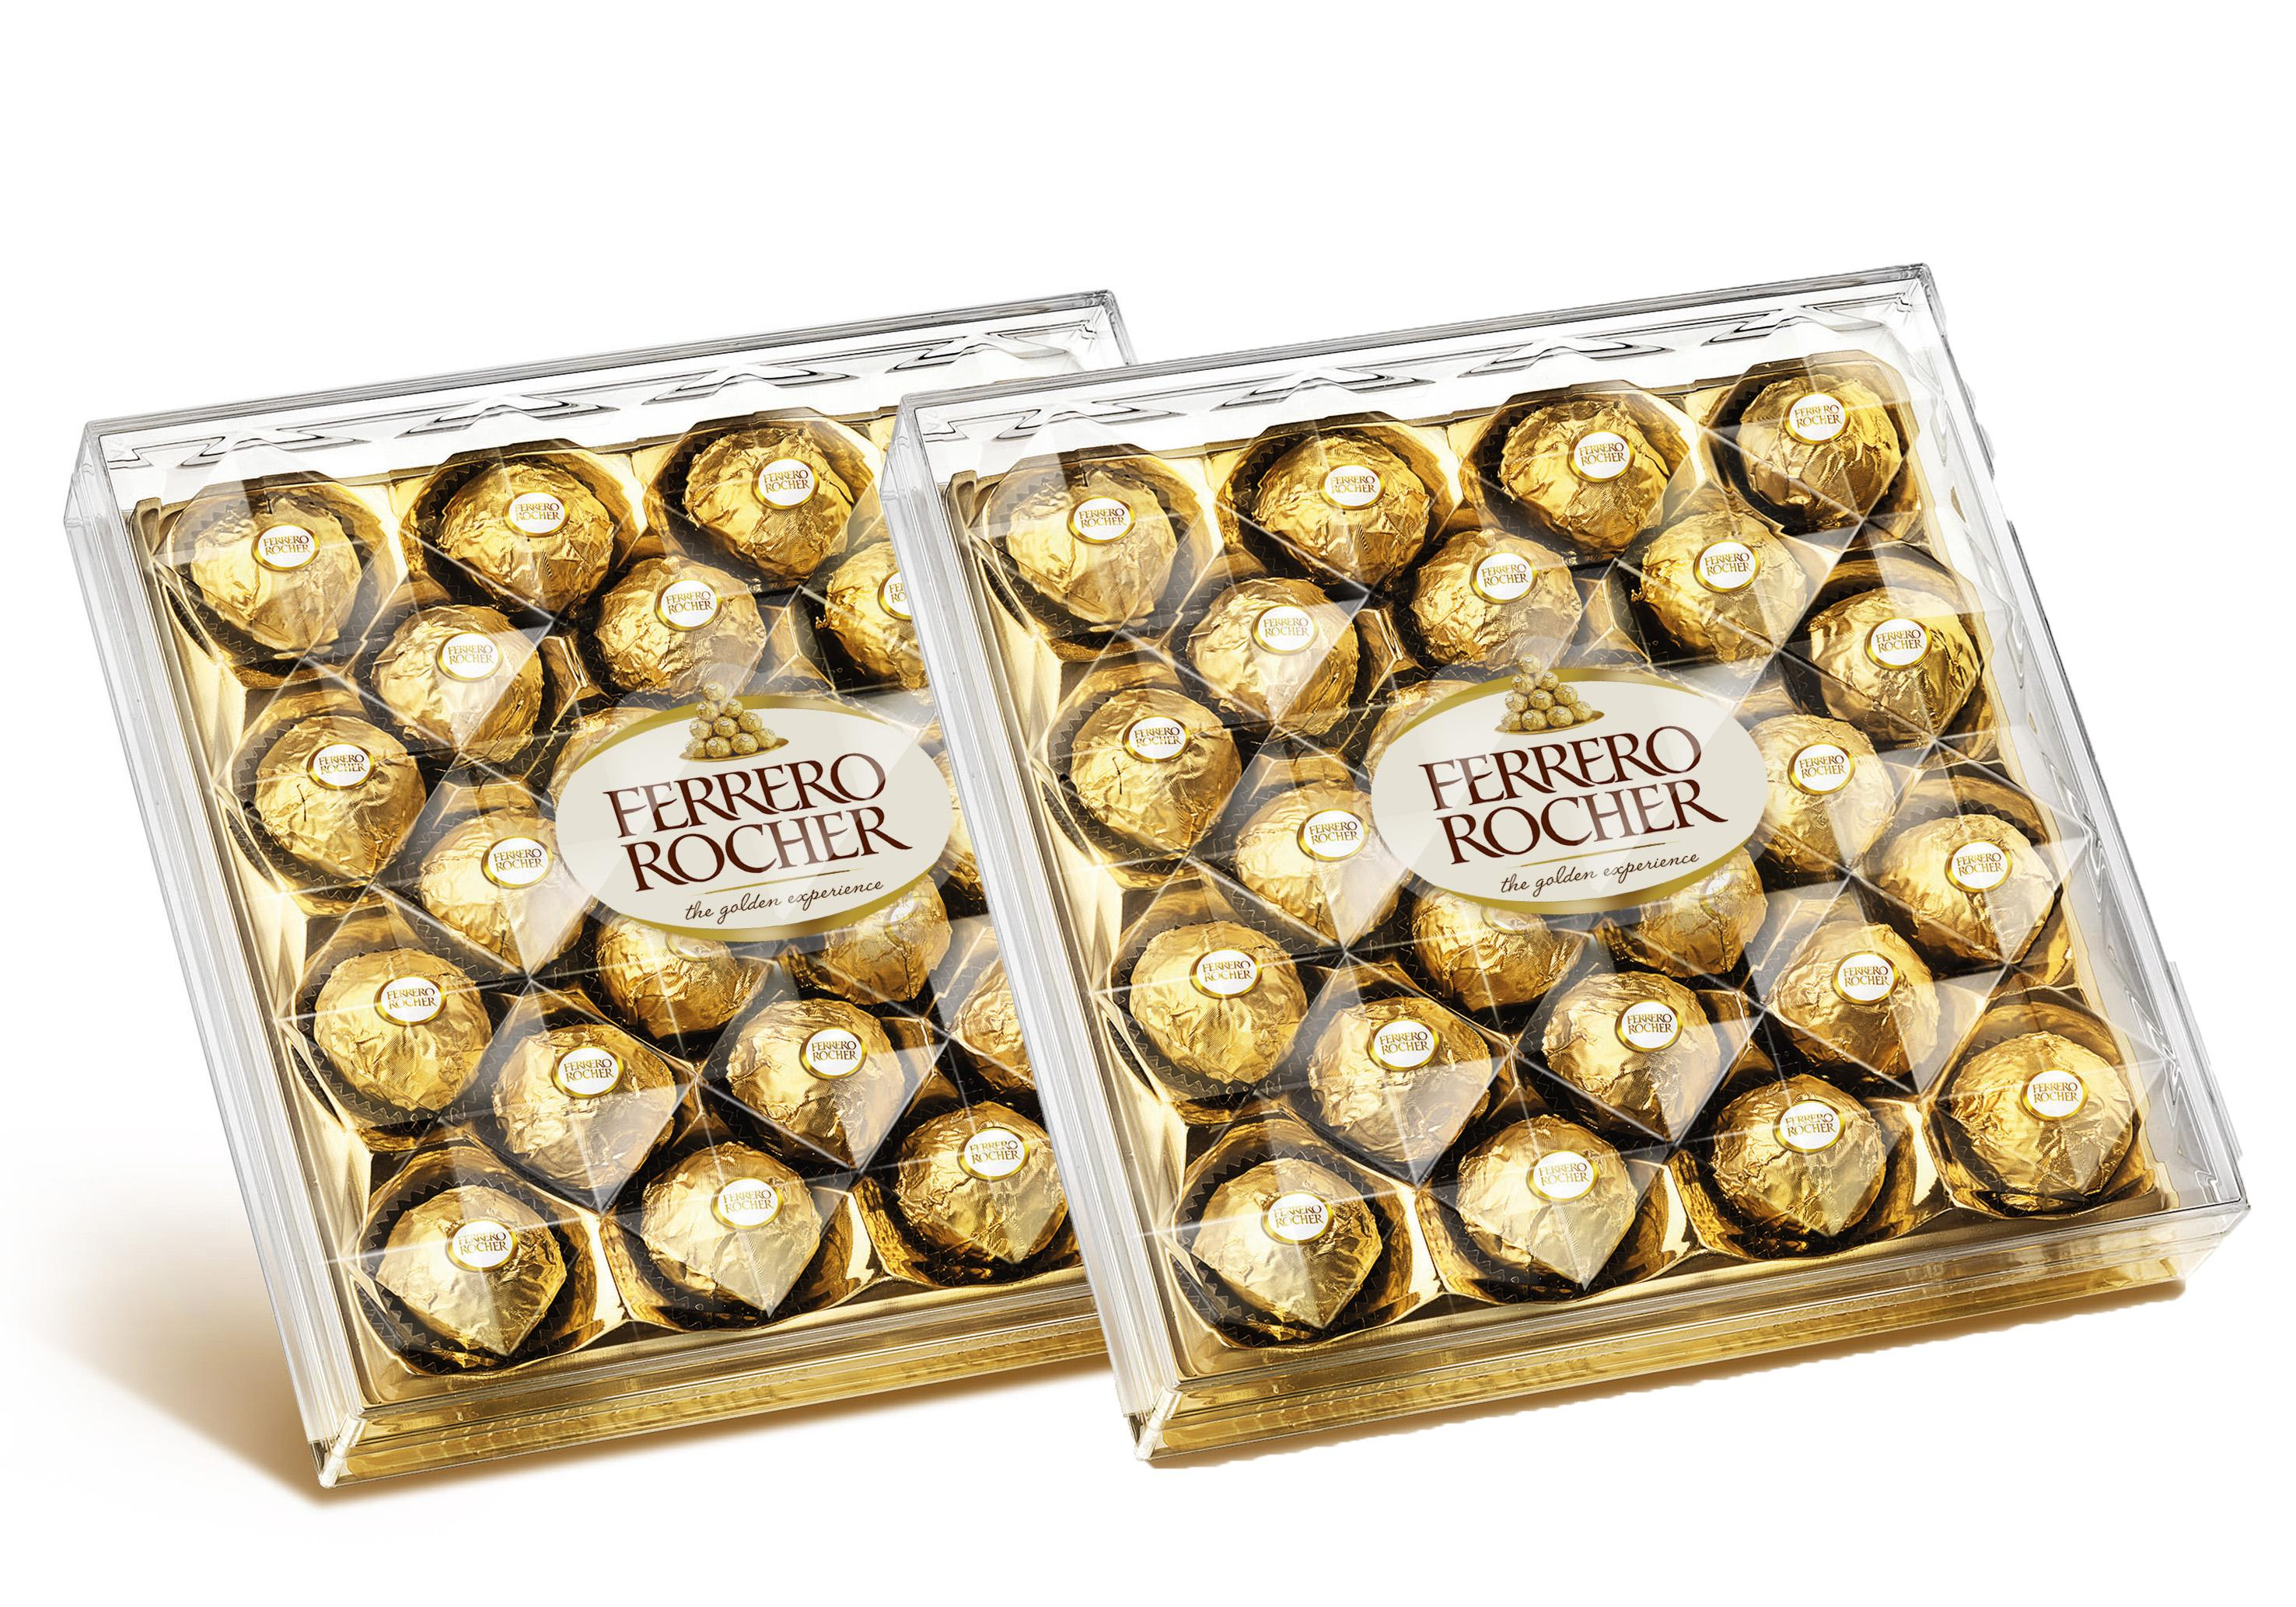 [[bundle Of 2]] Ferrero Rocher Chocolate 300g (t24 X2, Halal Certification) By B-Mart.